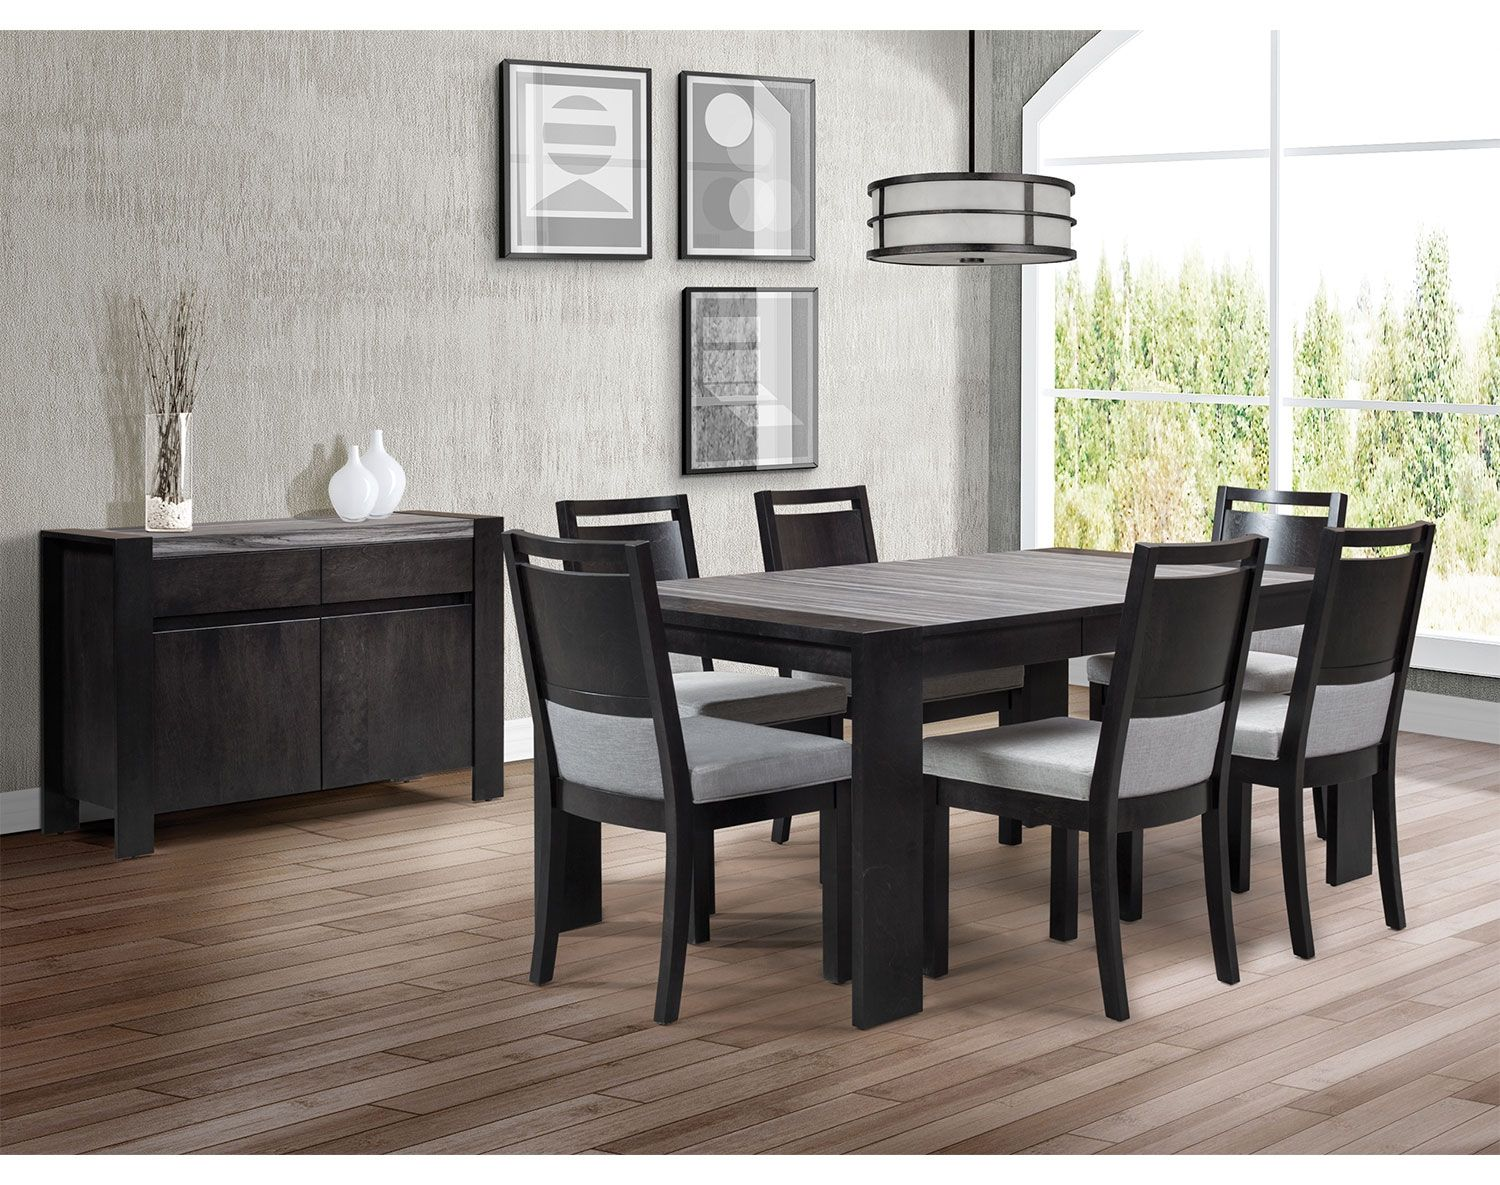 Dining Room Furniture  Khala 7Piece Dining Room Set  Espresso Captivating Espresso Dining Room Sets Decorating Inspiration